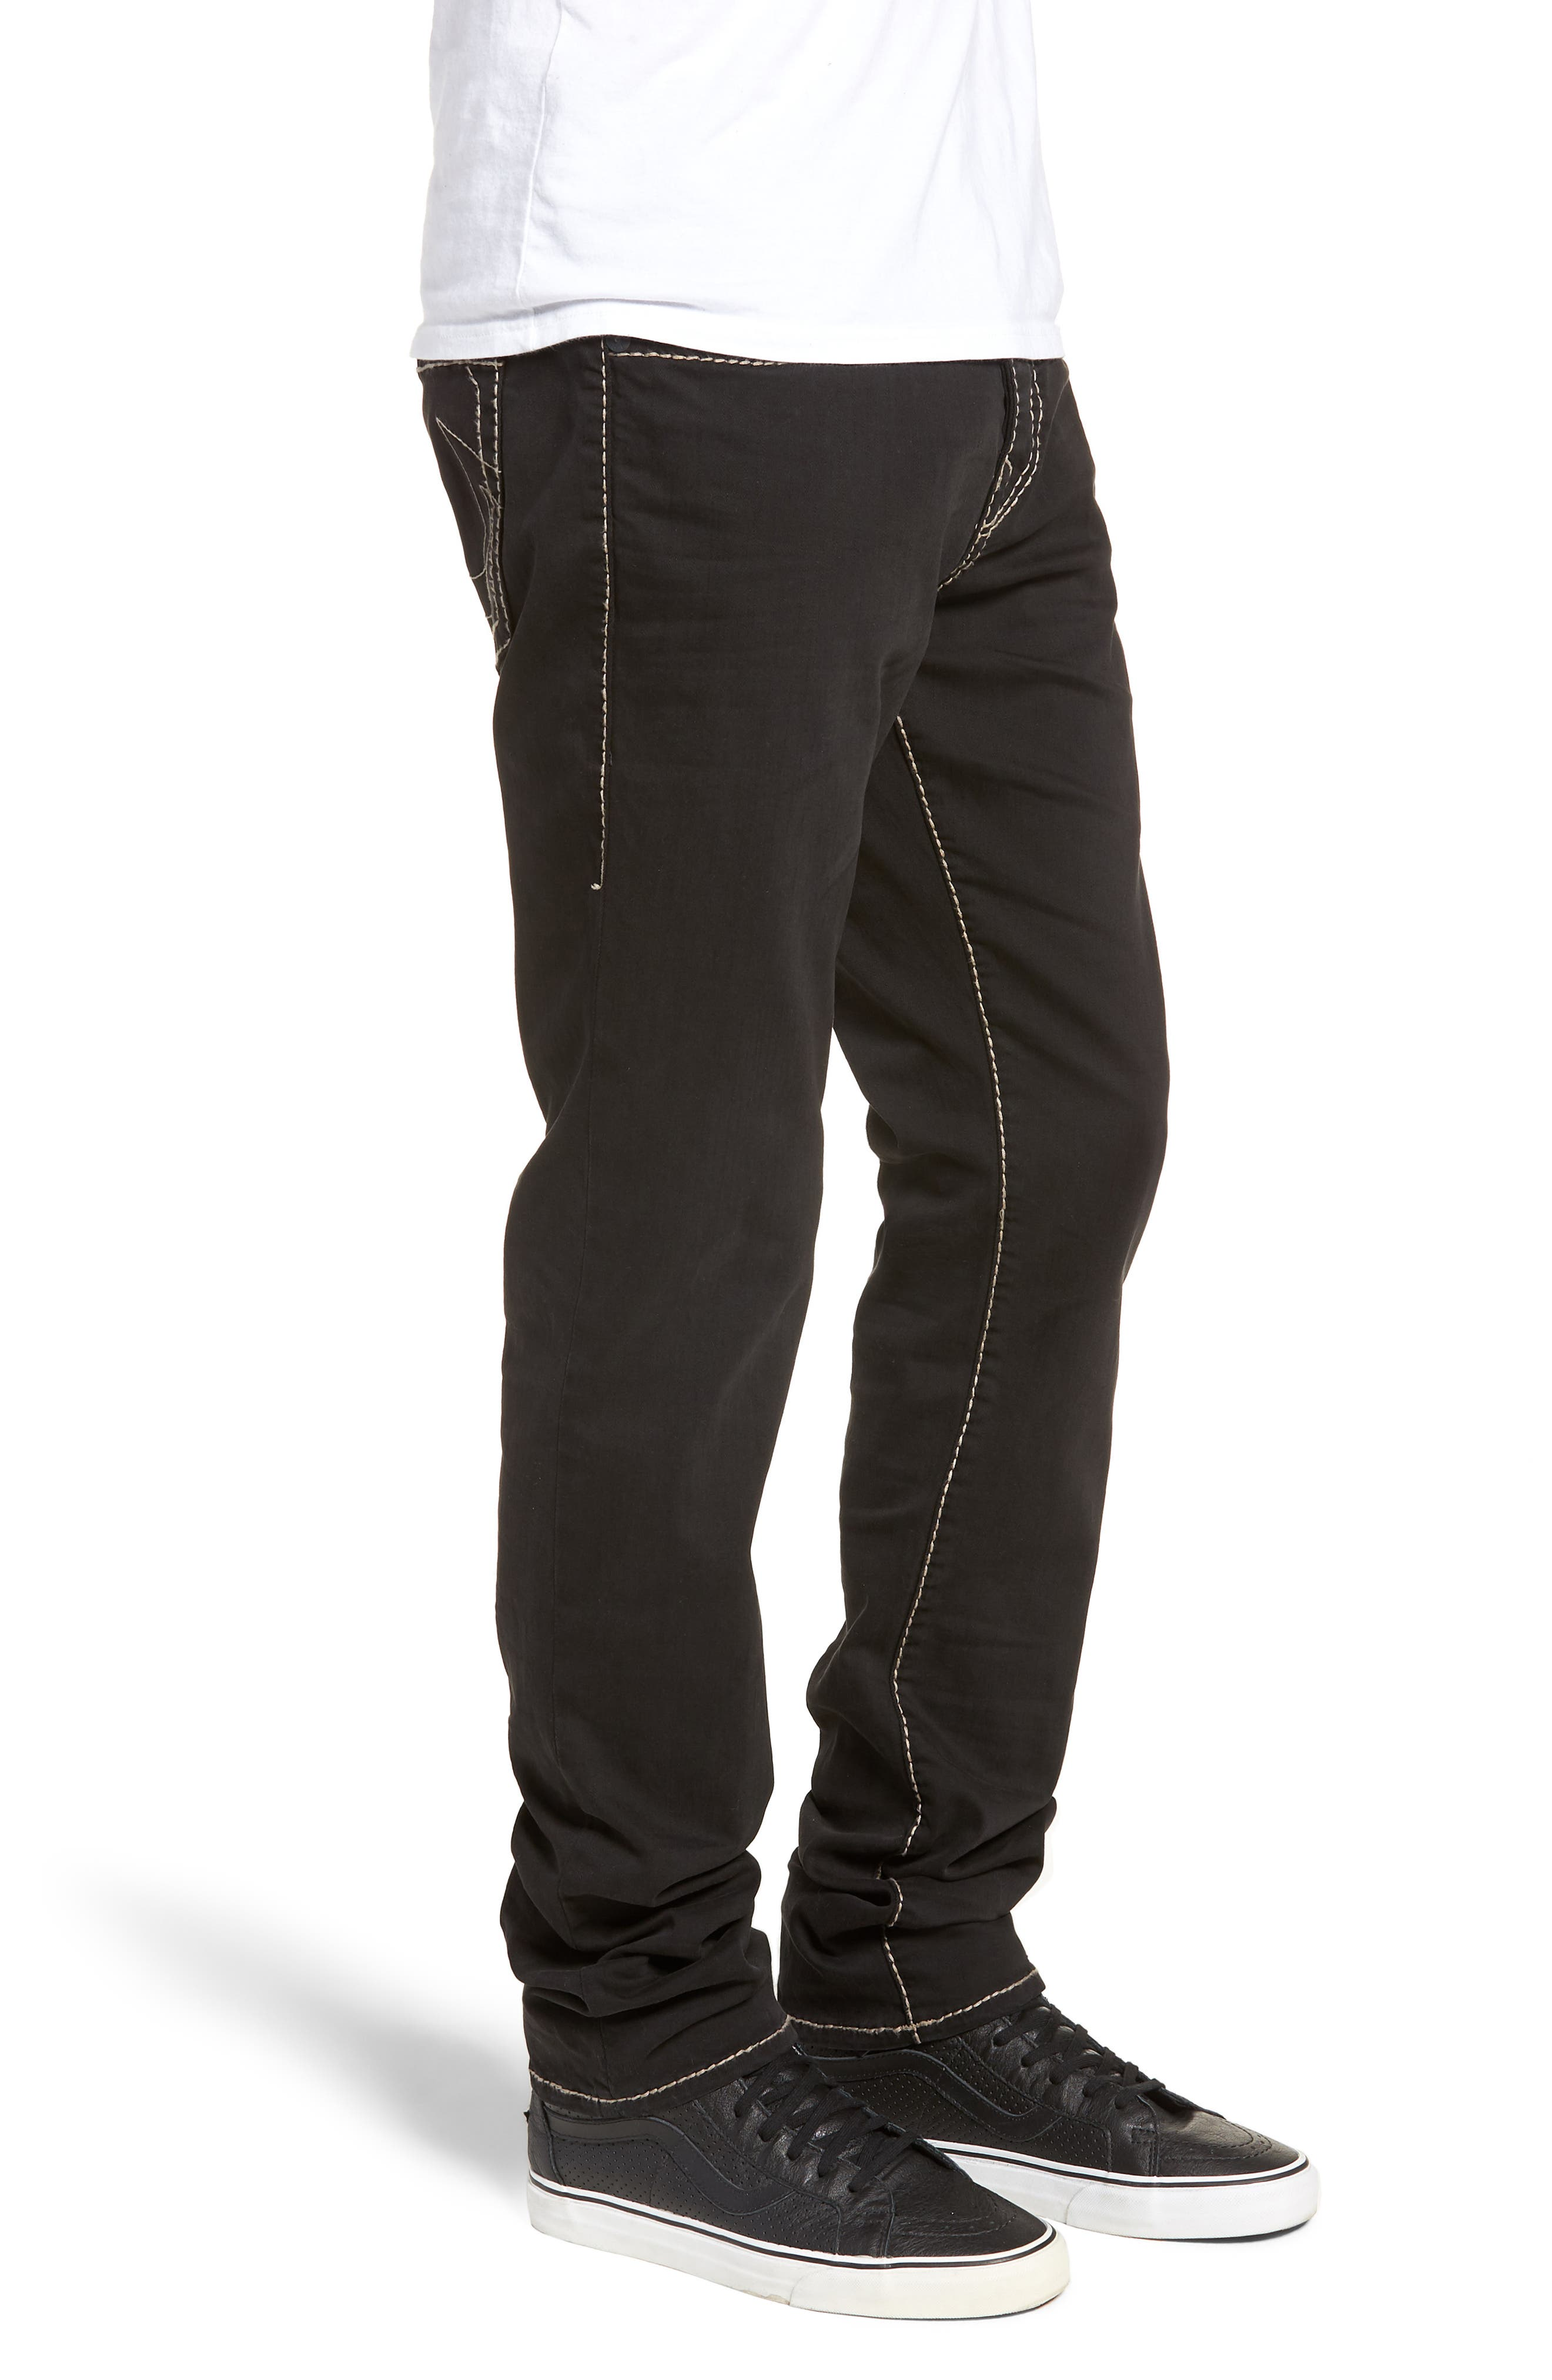 Rocco Skinny Fit Jeans,                             Alternate thumbnail 3, color,                             Black